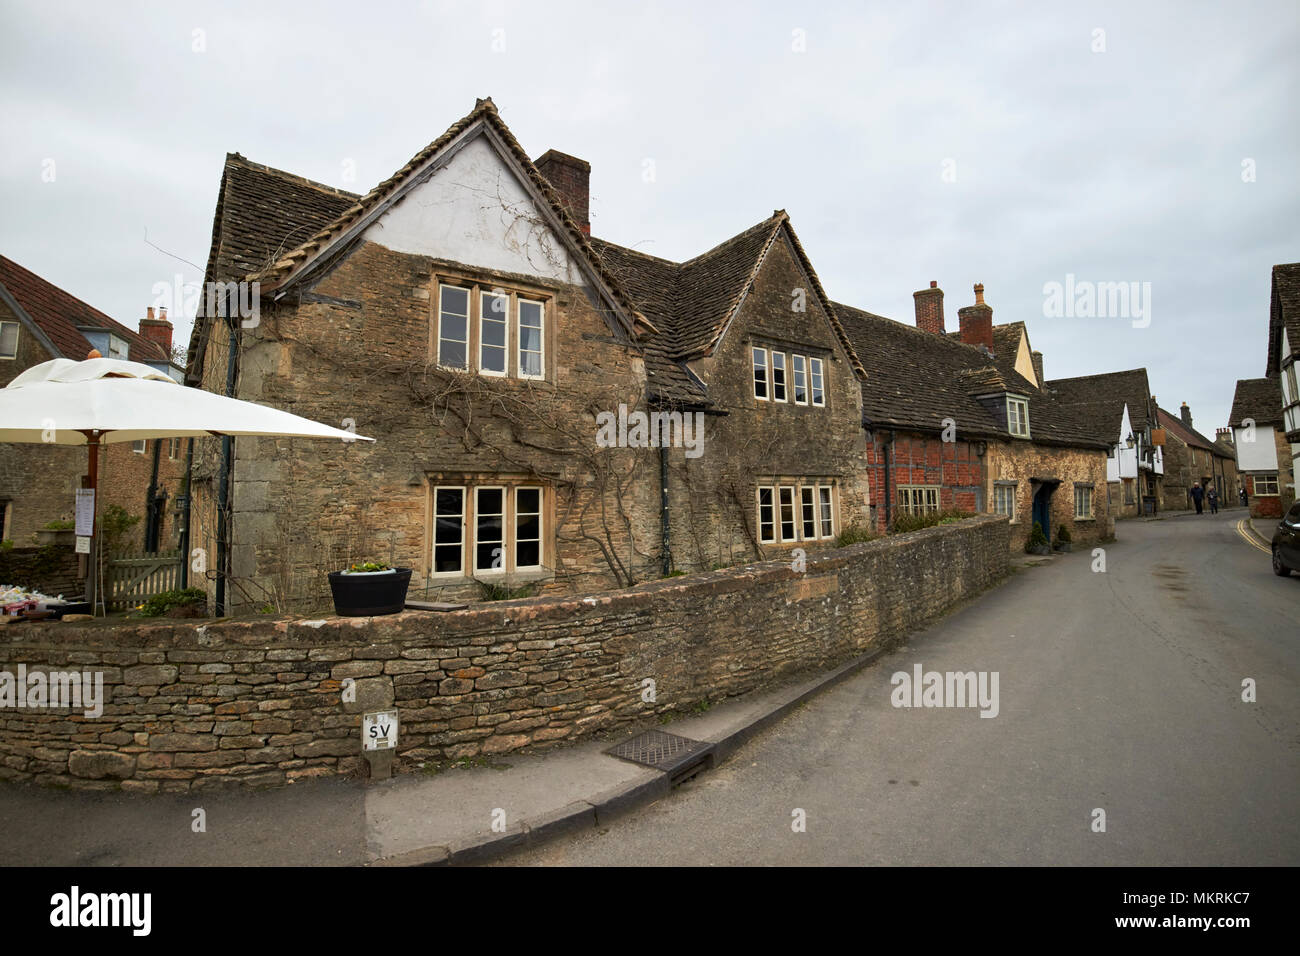 the corner house at the entrance to church street late medieval building Lacock village wiltshire england uk - Stock Image